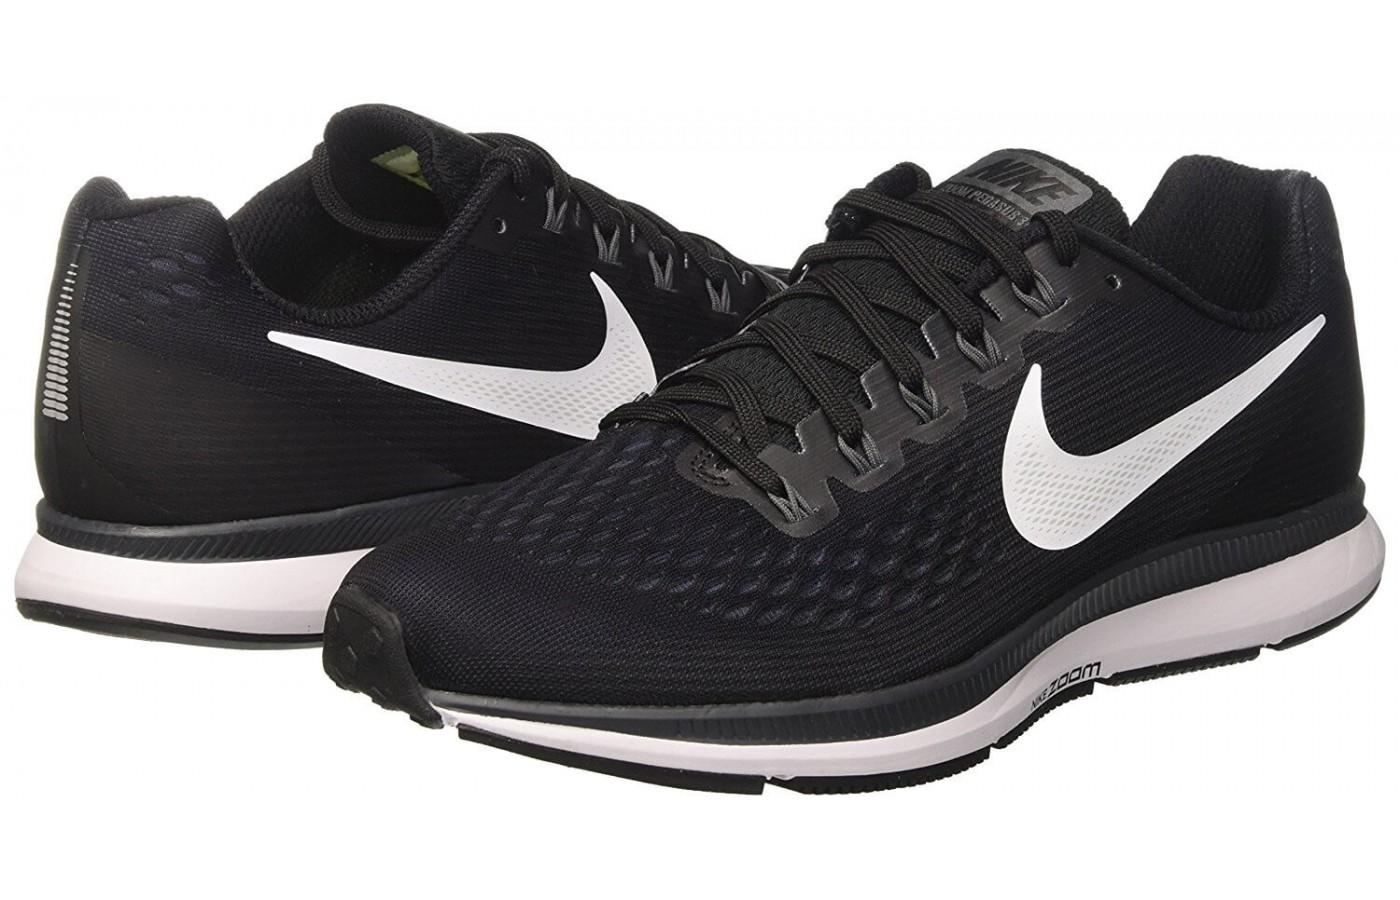 the Nike Air Zoom Pegasus 34 is a great overall running shoe